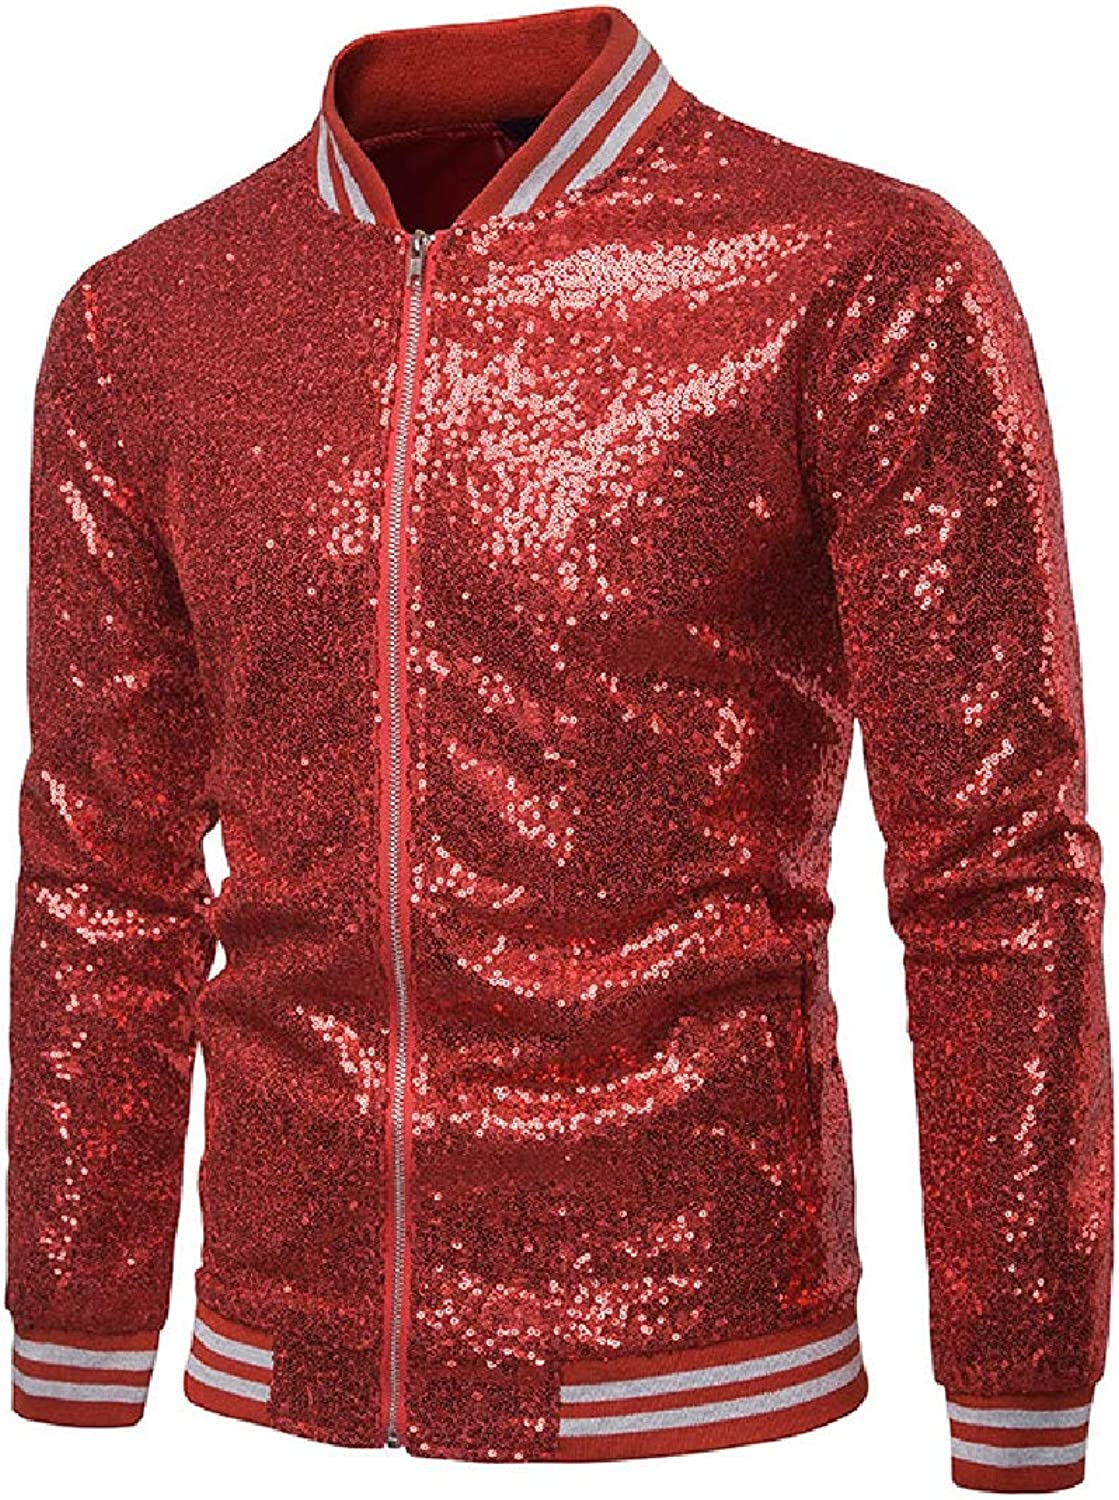 414addbc0 Doufine Doufine Doufine Men Windbreakers Sequin Shiny with Zip Relaxed  Jacket Coat bf248a